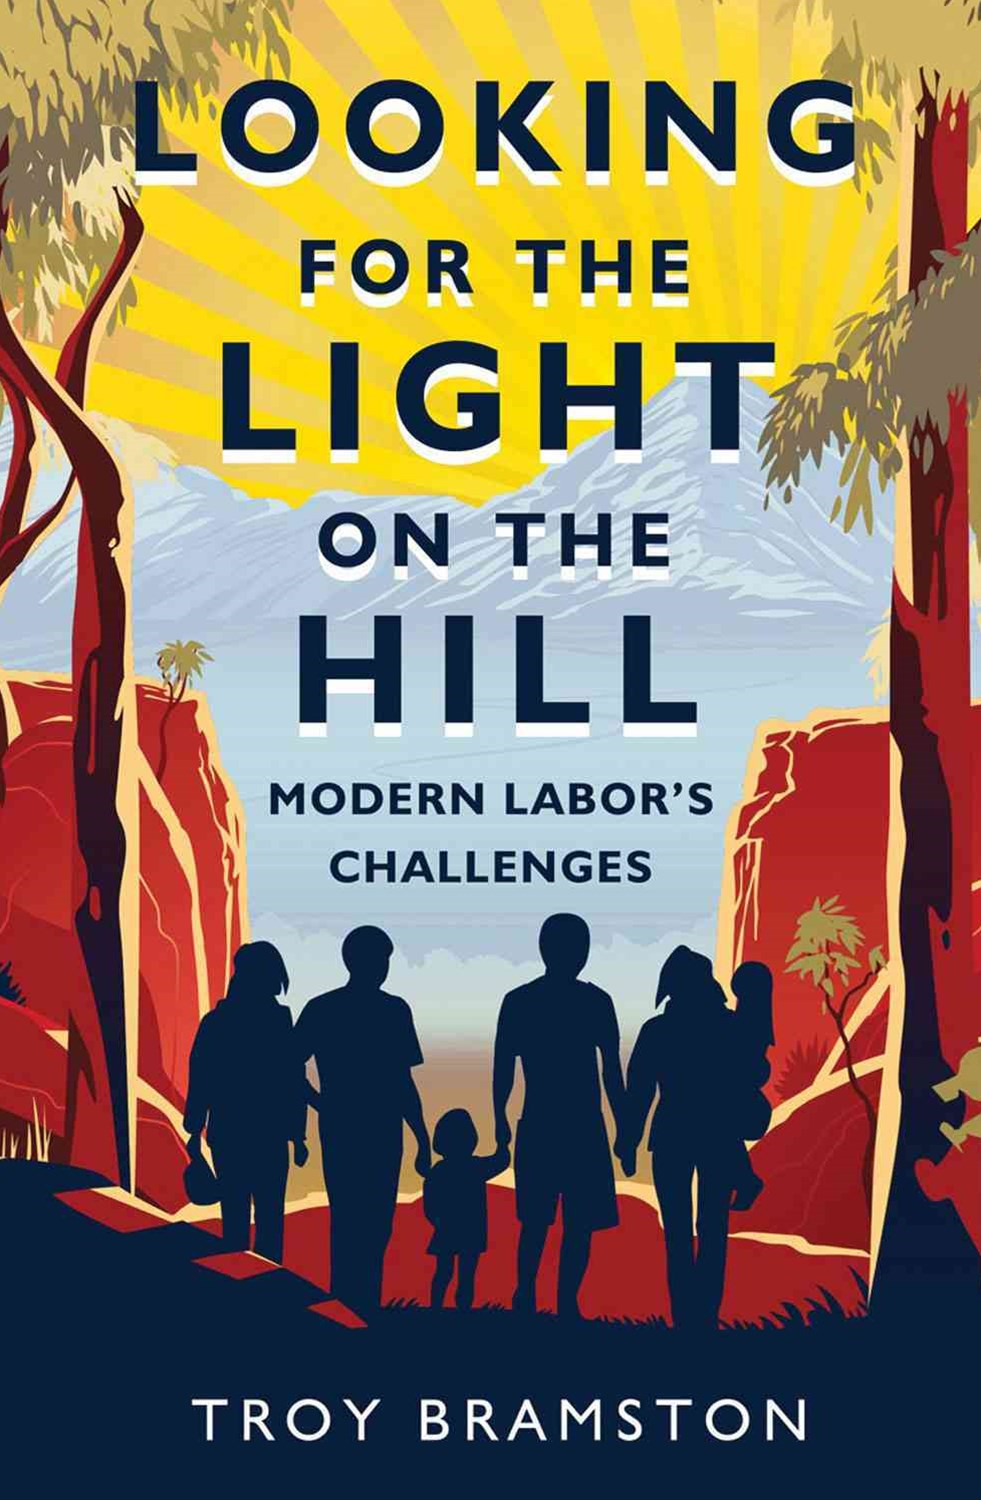 Looking For The Light On The Hill: Modern Labor's Challenges